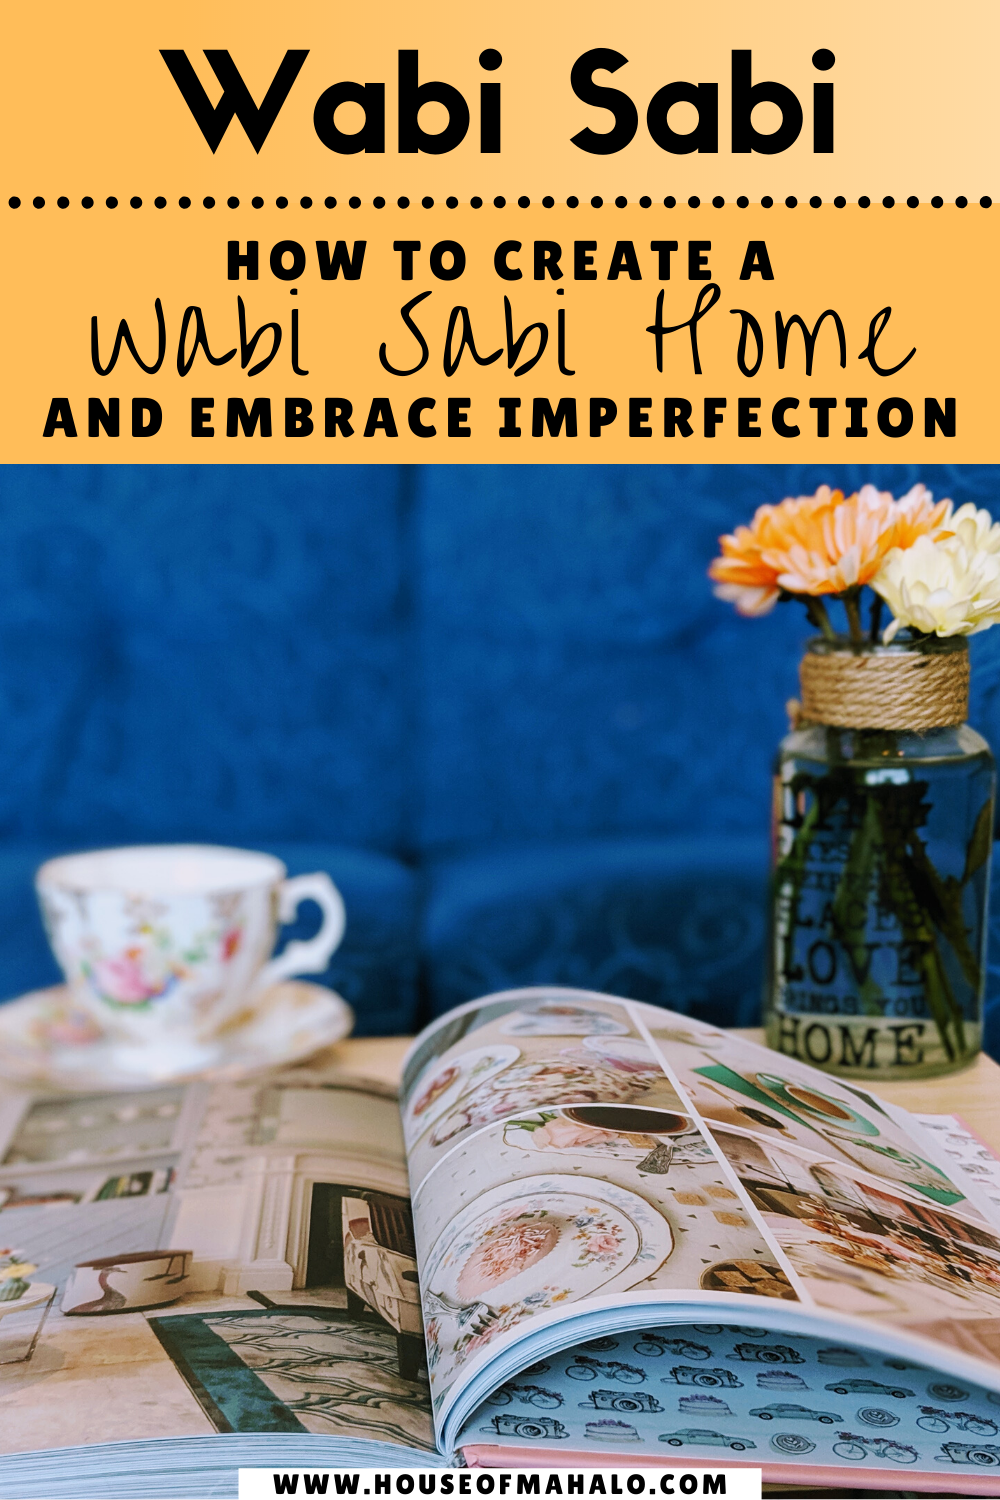 Wabi-Sabi House & Japanese Philosophy